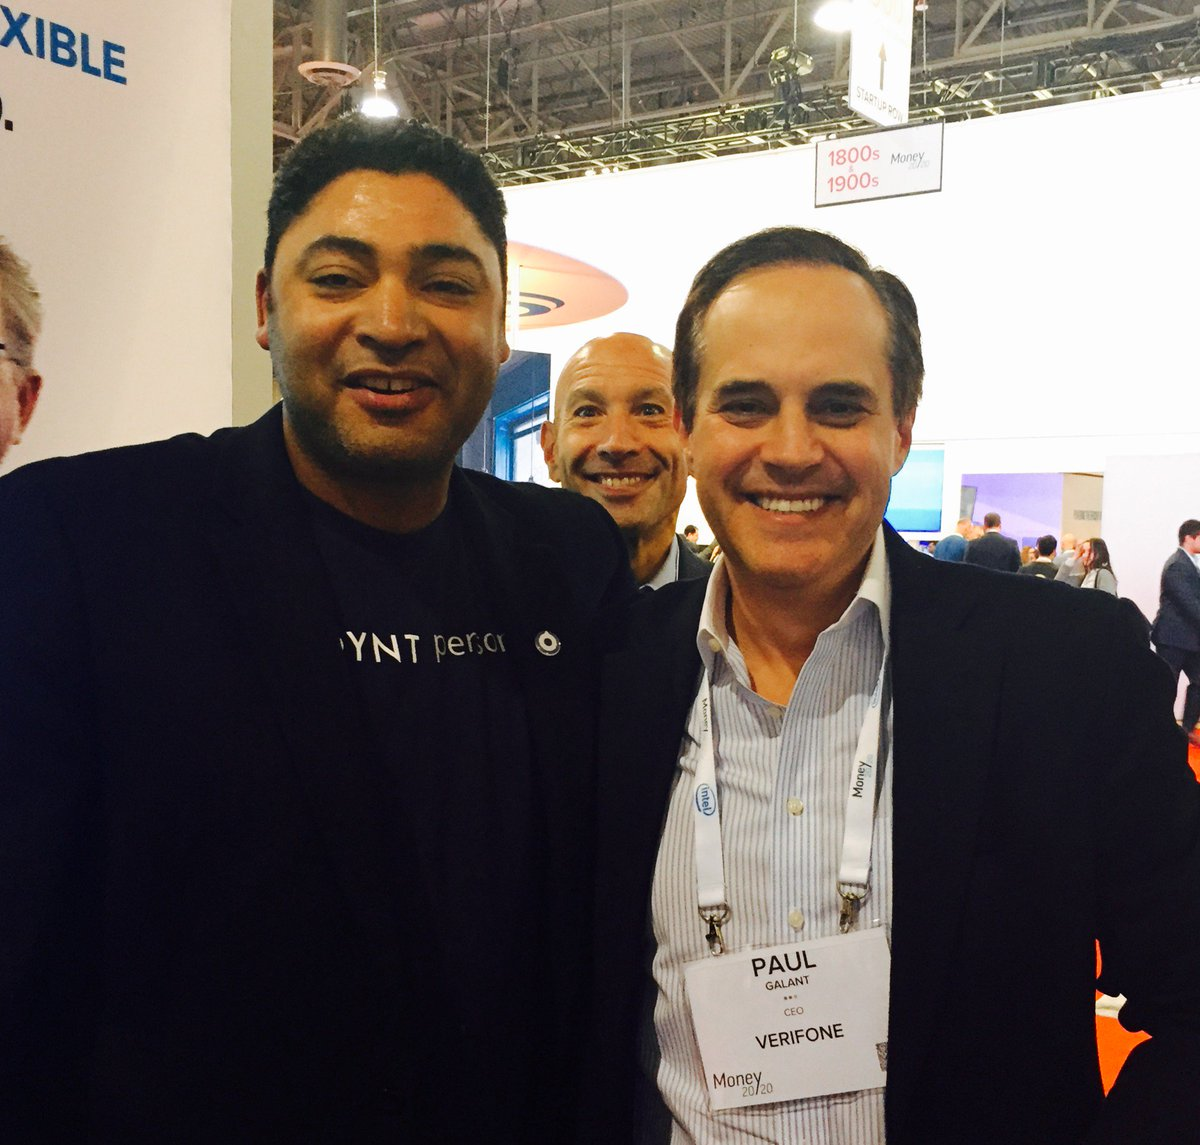 CEO meetup in the @Verifone booth! @Poynt @obedier & @PaulGalant #Money2020 #photobomb by EVP Vin D'Agostino https://t.co/Ds4sQgiP1d